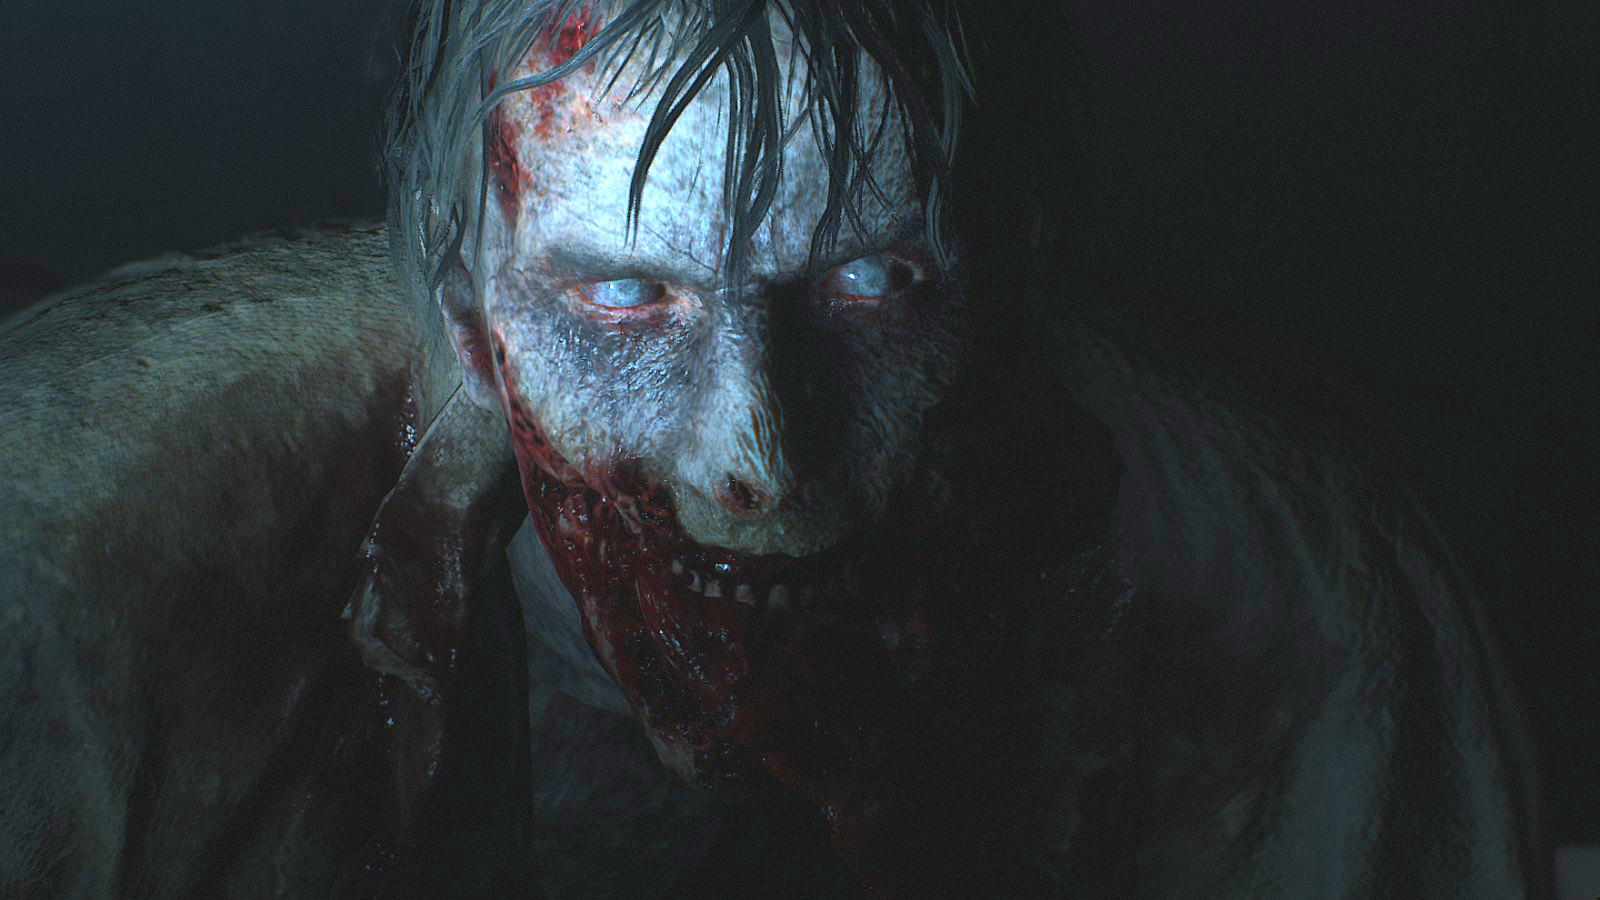 Resident Evil 2 Remake Discard Items When Can You Safely Discard